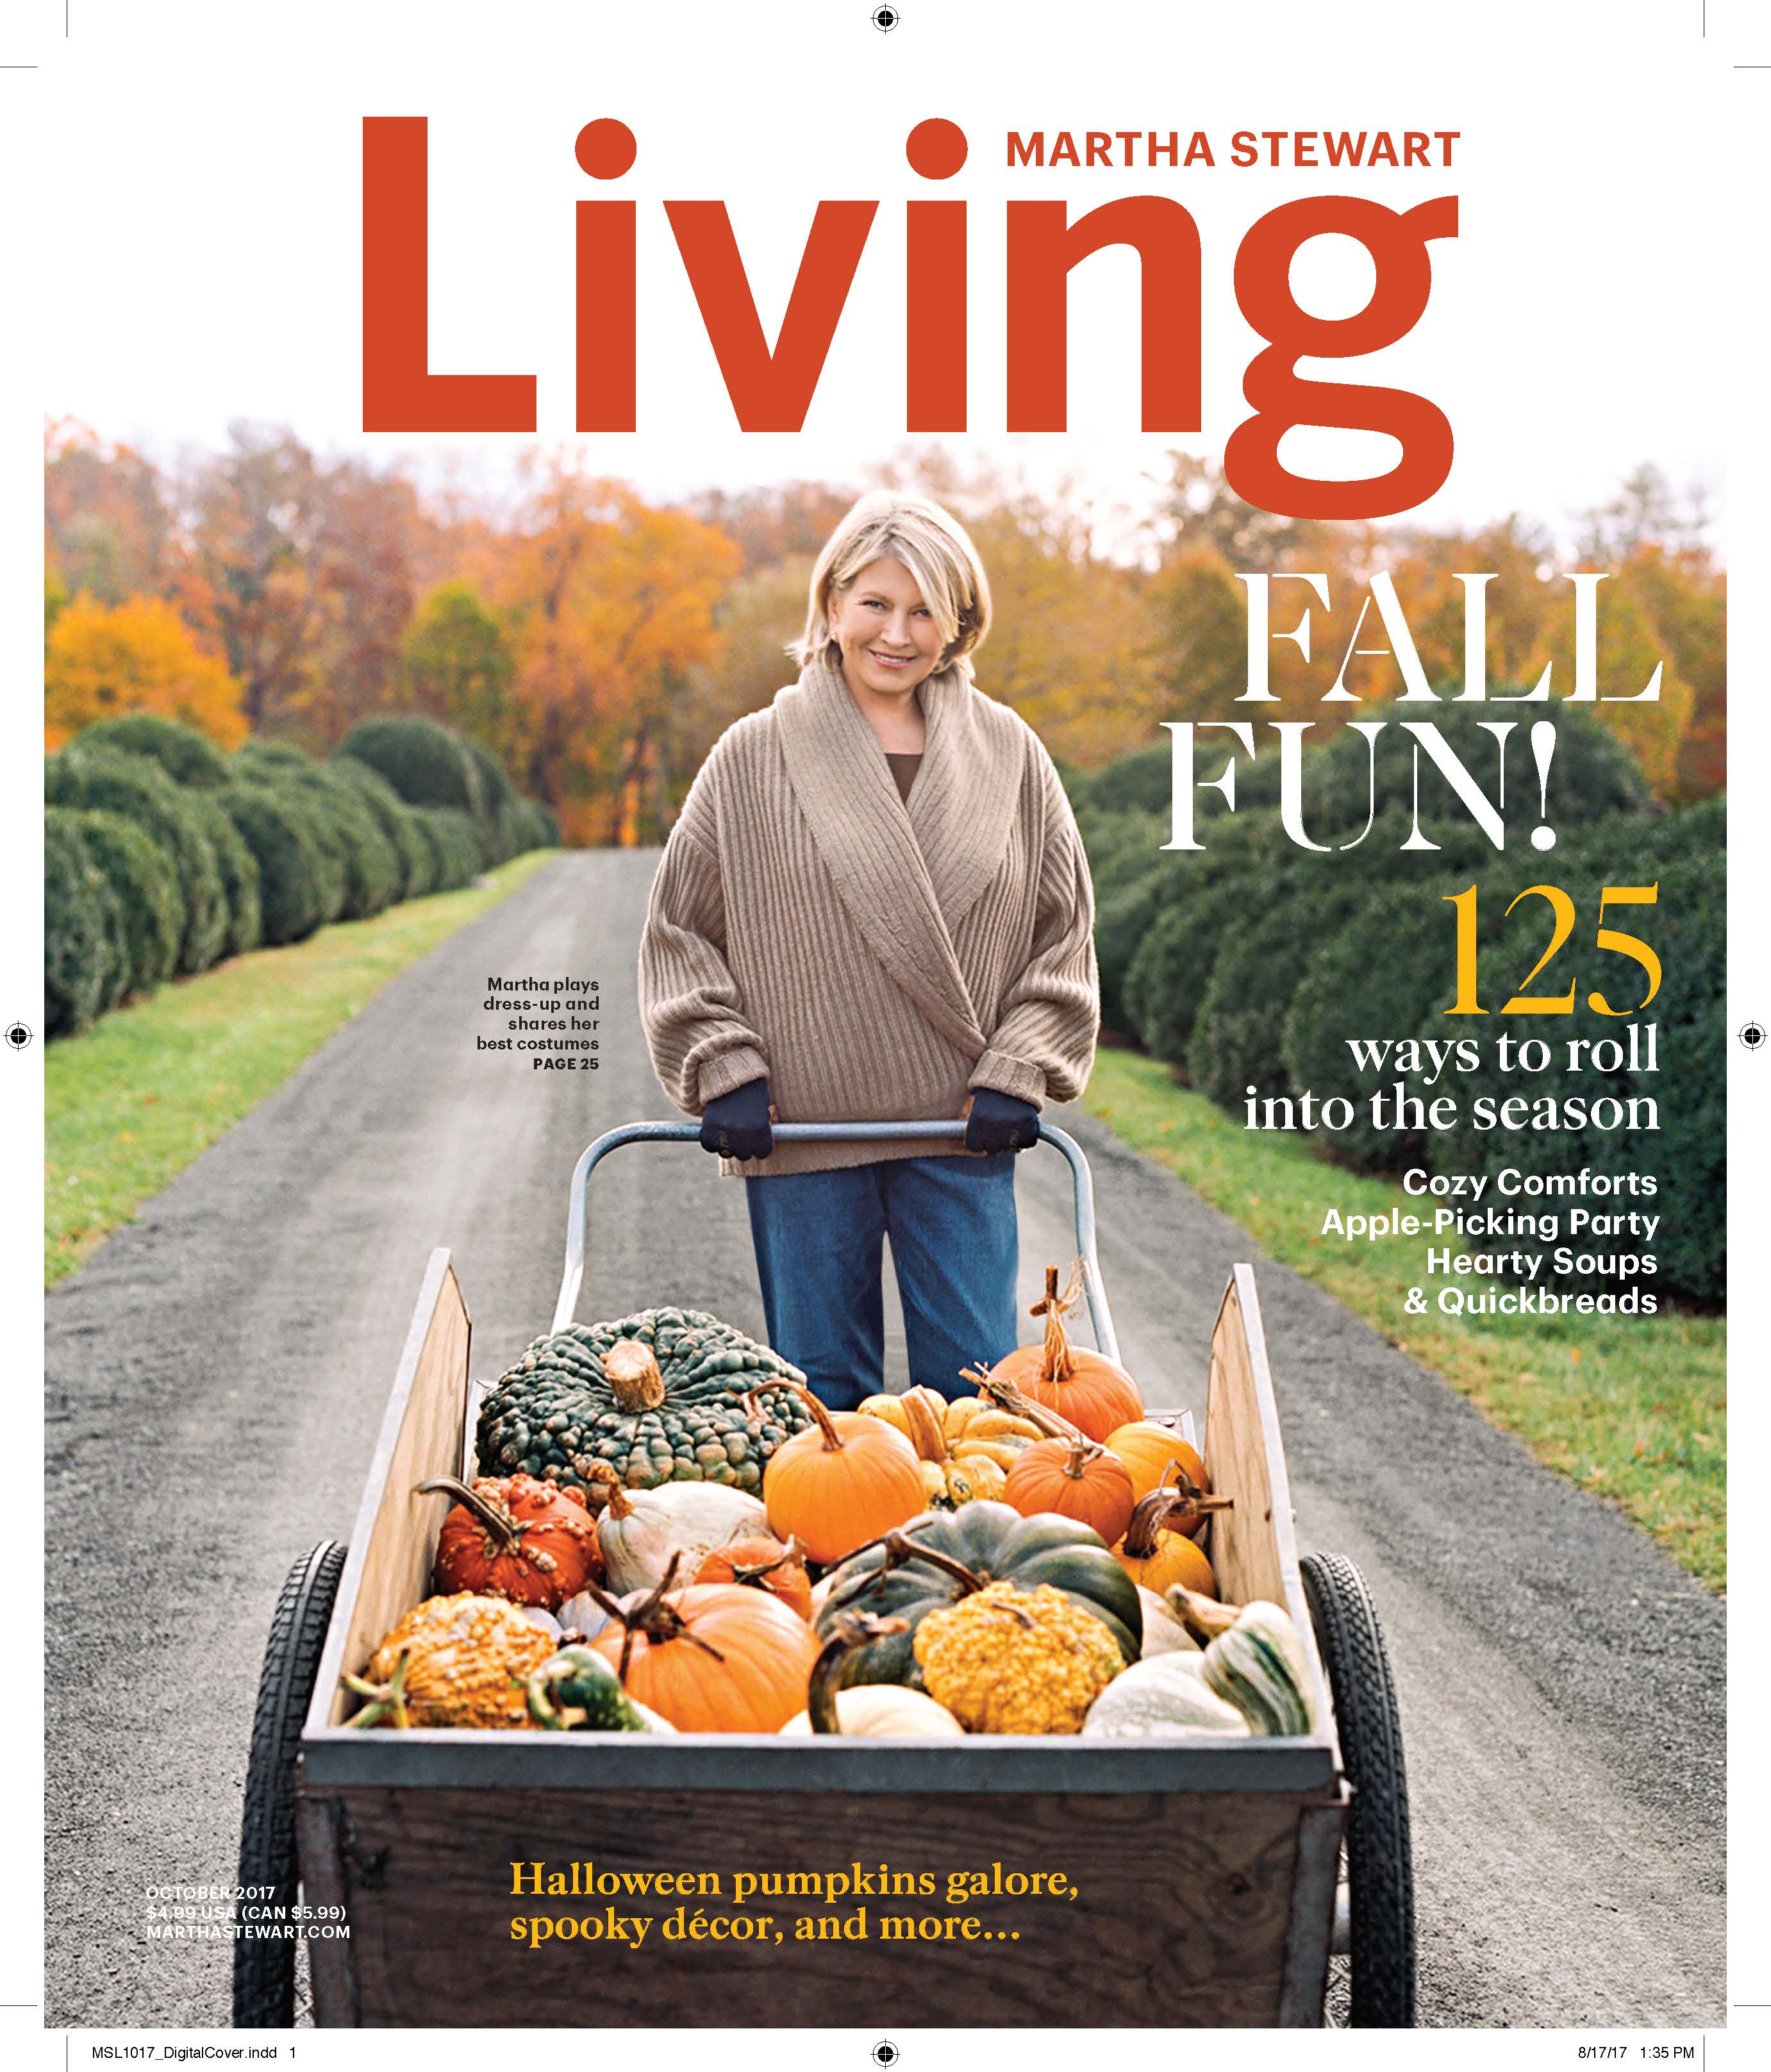 martha stewart living a recipe for magazine success stay authentic to your namesake pure to your audience the mr magazine interview with elizabeth